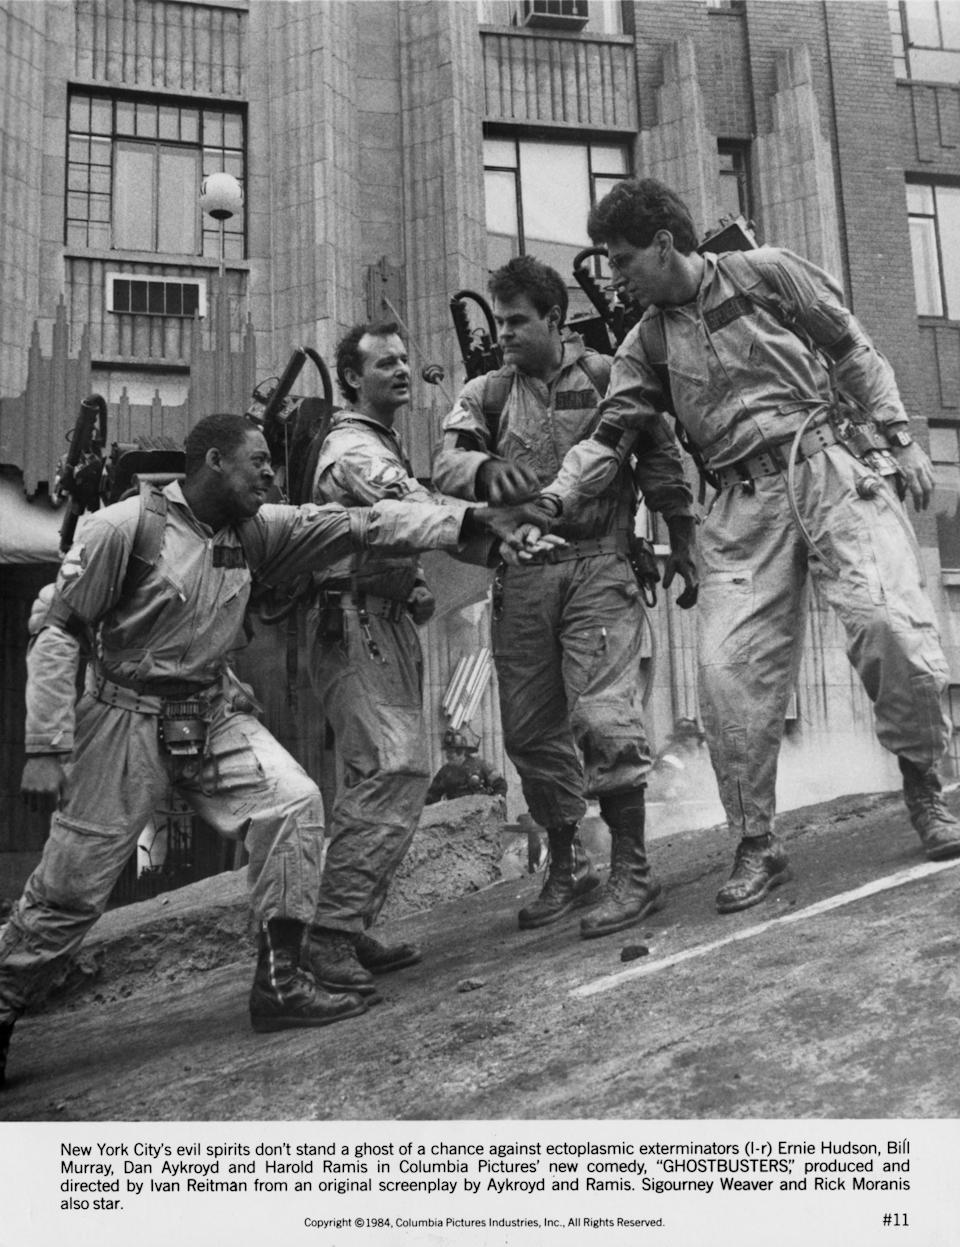 Left to right: Ernie Hudson, Bill Murray, Dan Aykroyd and Harold Ramis (1944 - 2014) as paranormal investigators in Ivan Reitman's 1984 comedy 'Ghostbusters'. (Photo by Columbia Pictures/Archive Photos/Getty Images)